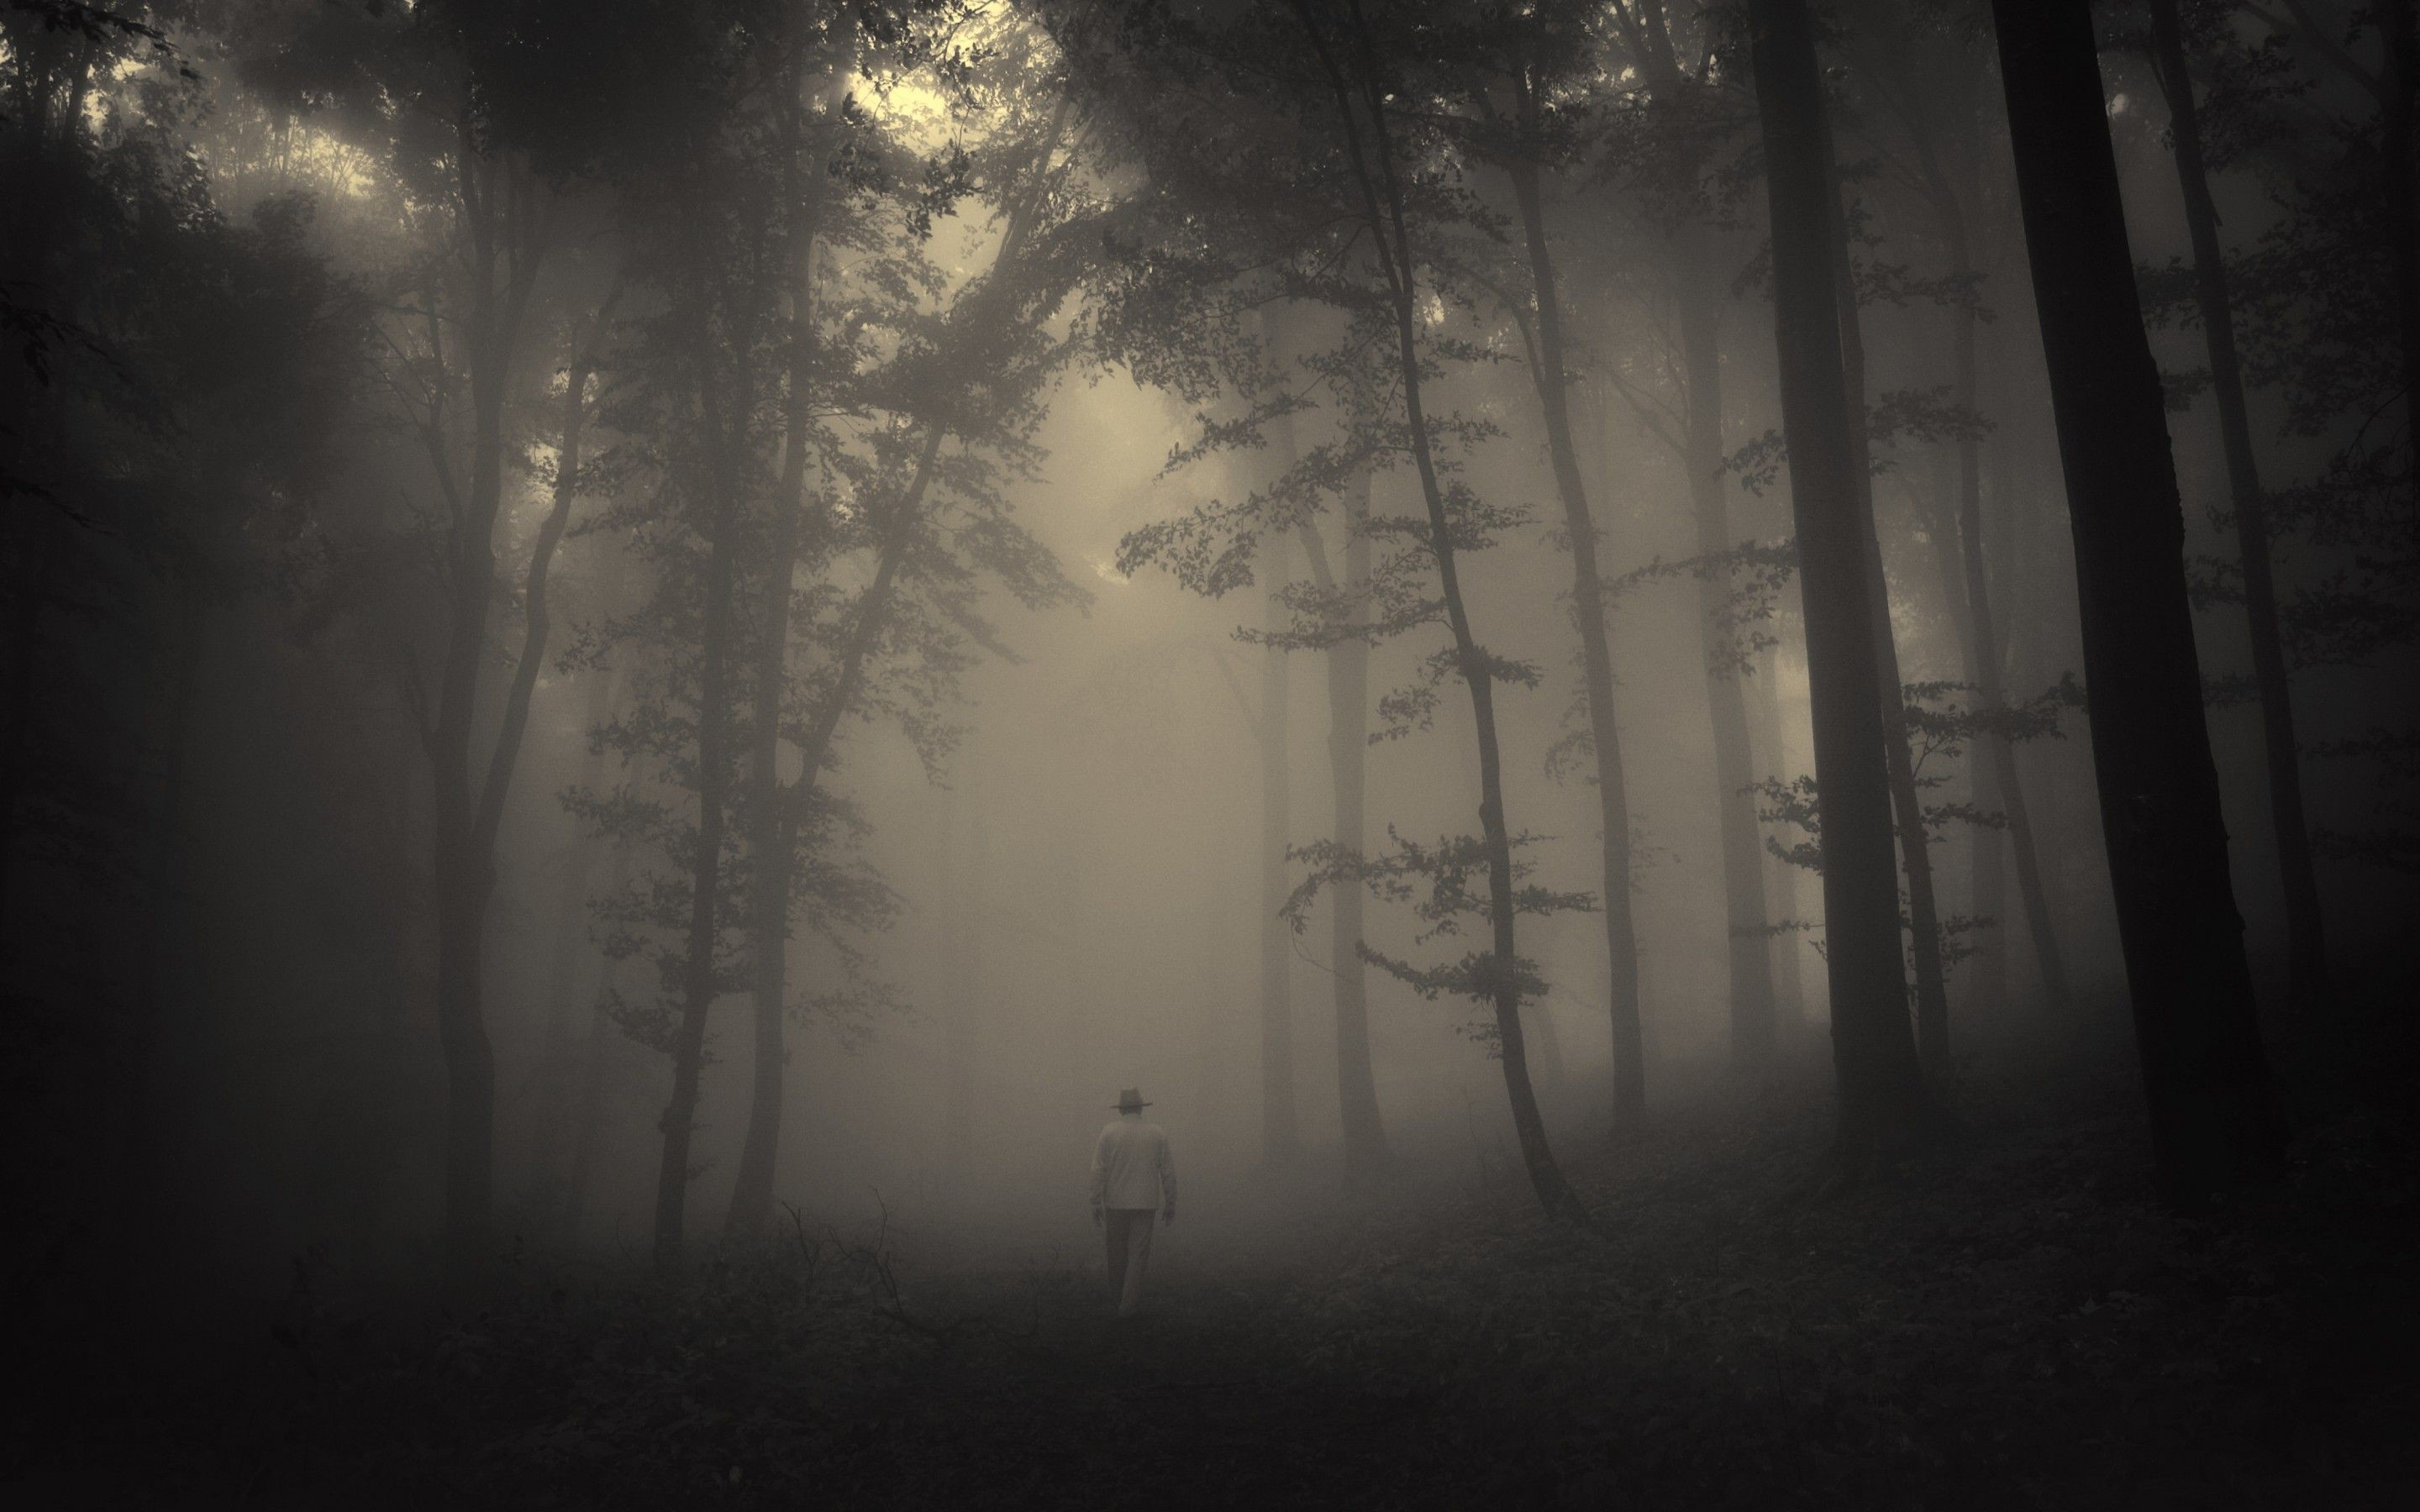 Download Creepy Forest Wallpaper For Windows #lxiua .